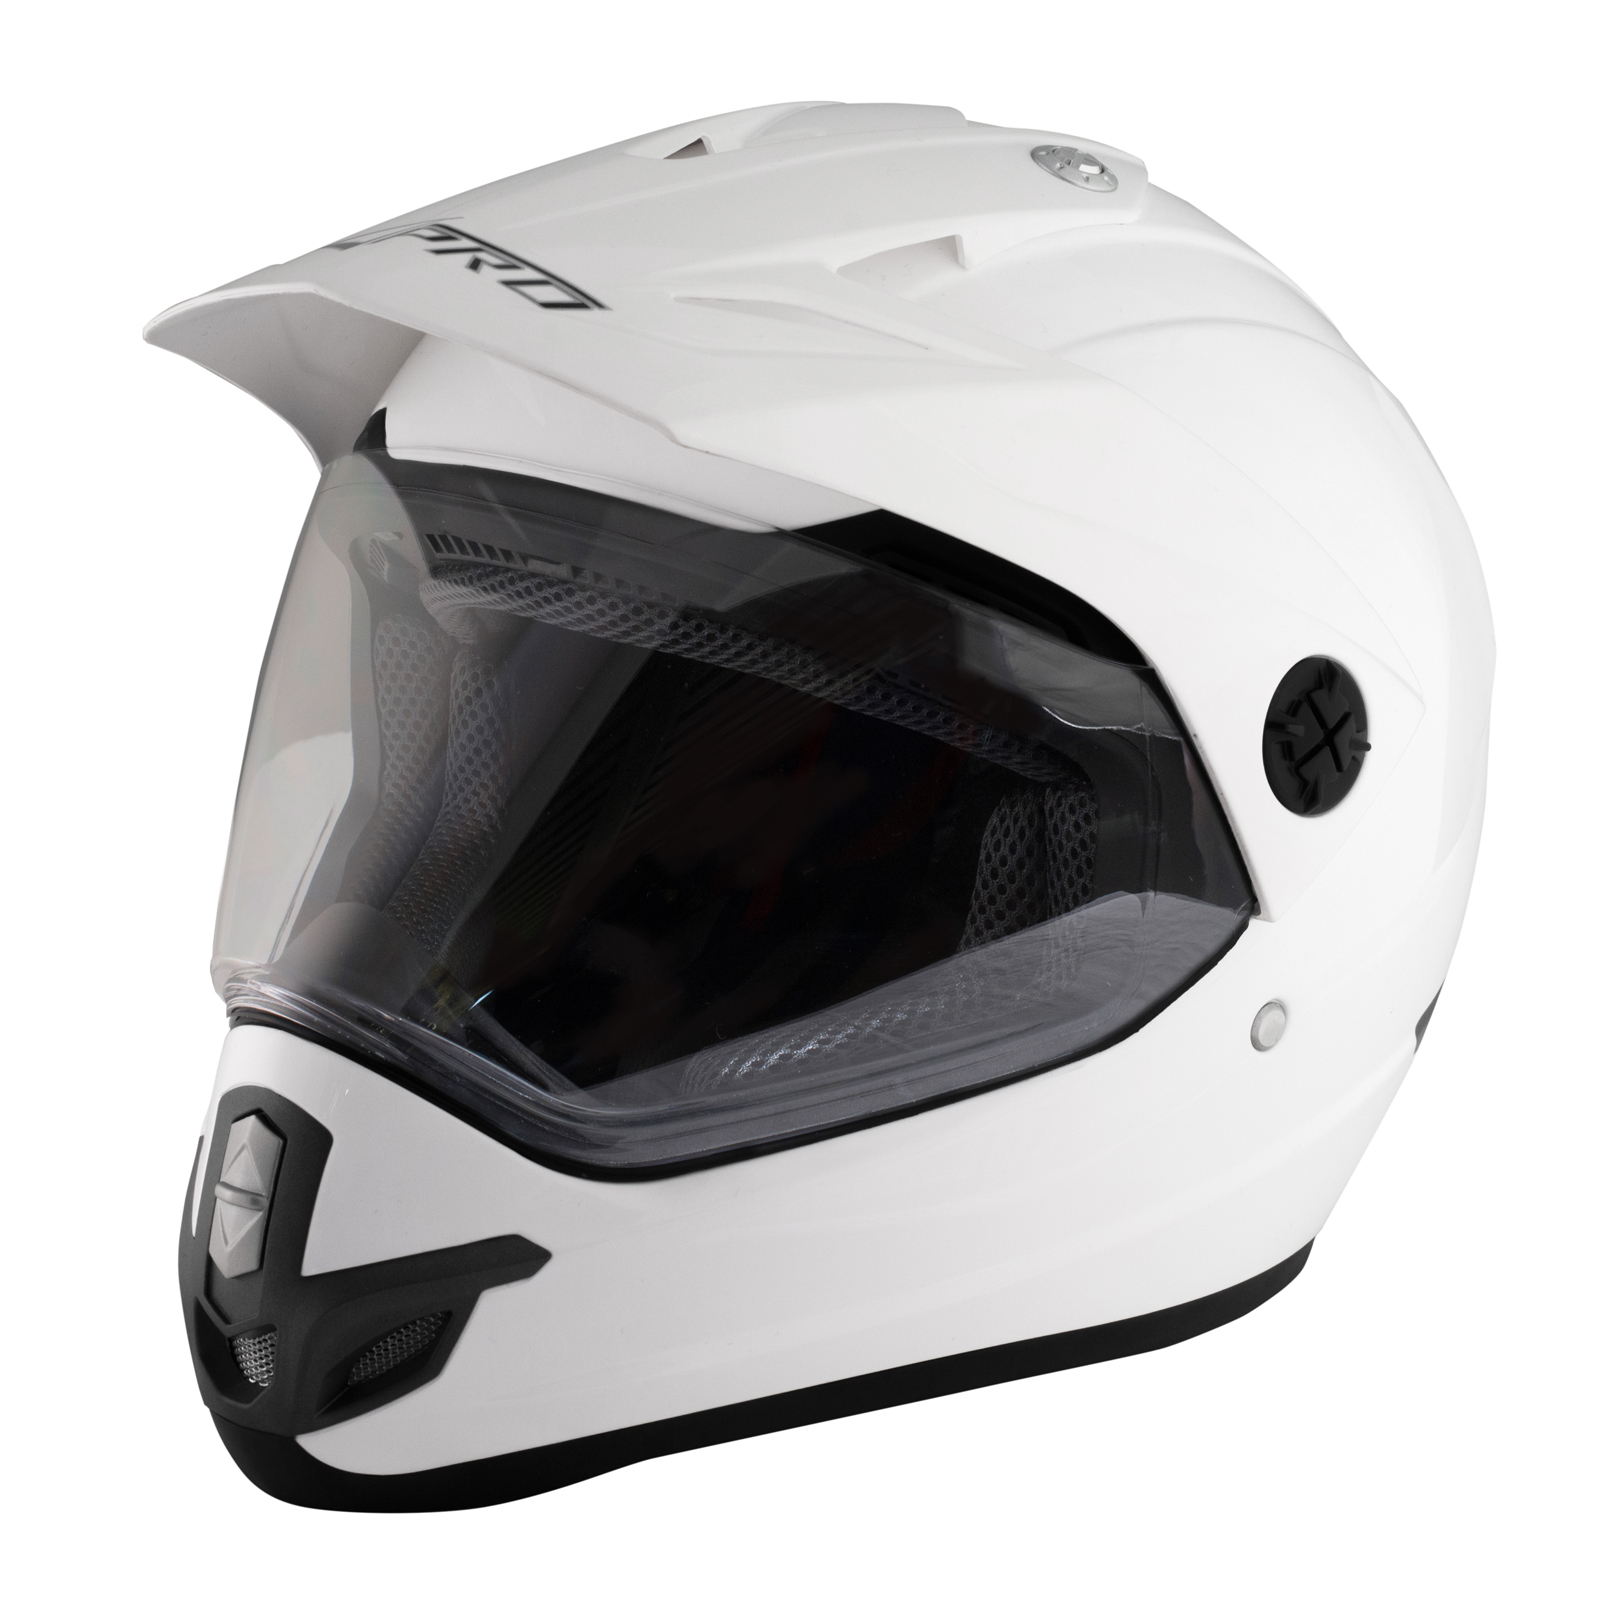 casque motocross moto enduro offroad quad atv visi re anti bu e blanc ebay. Black Bedroom Furniture Sets. Home Design Ideas